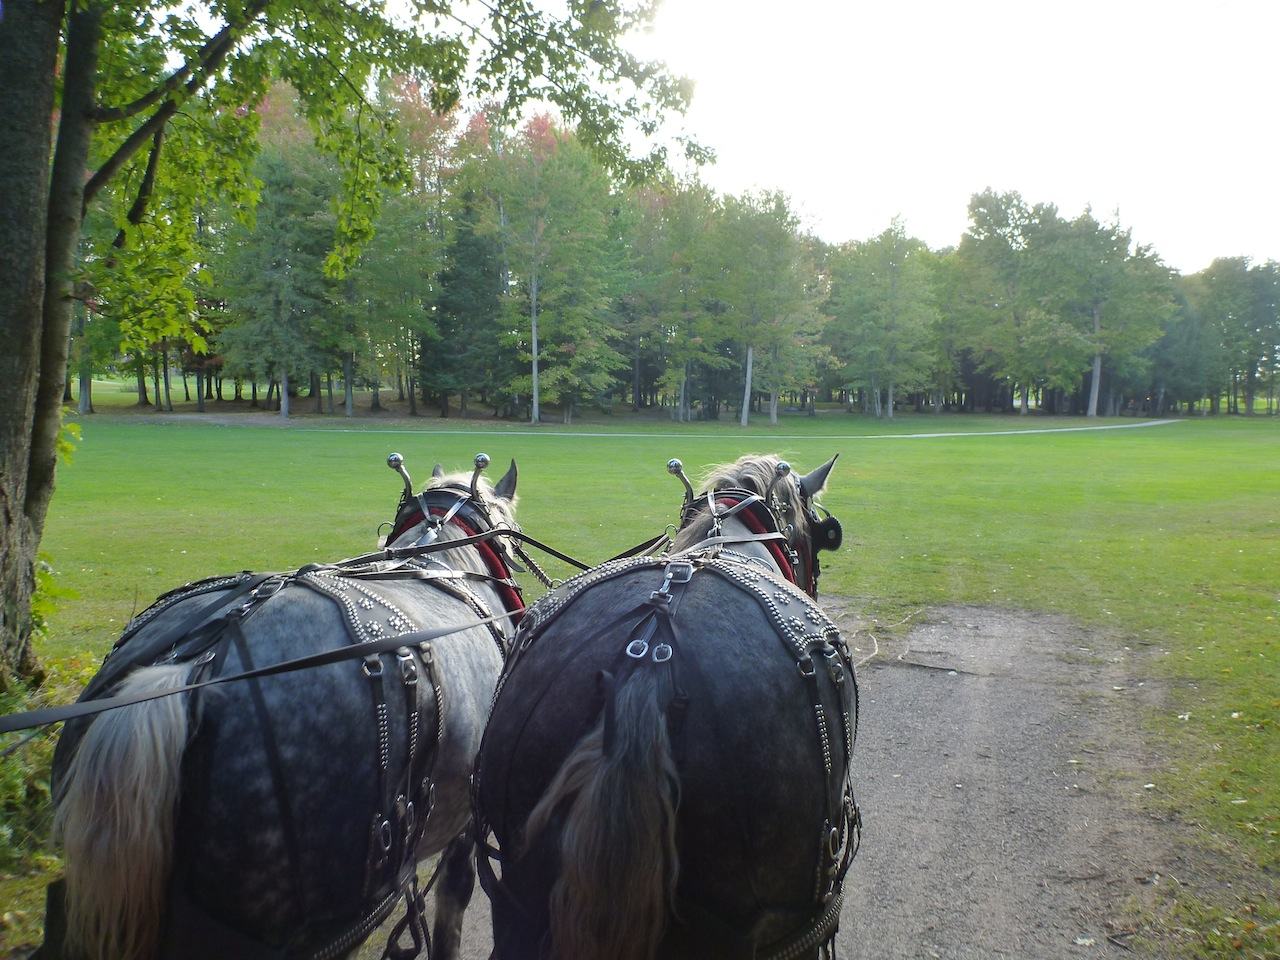 The Horse Drawn Carriage Runs Through The Golf Course